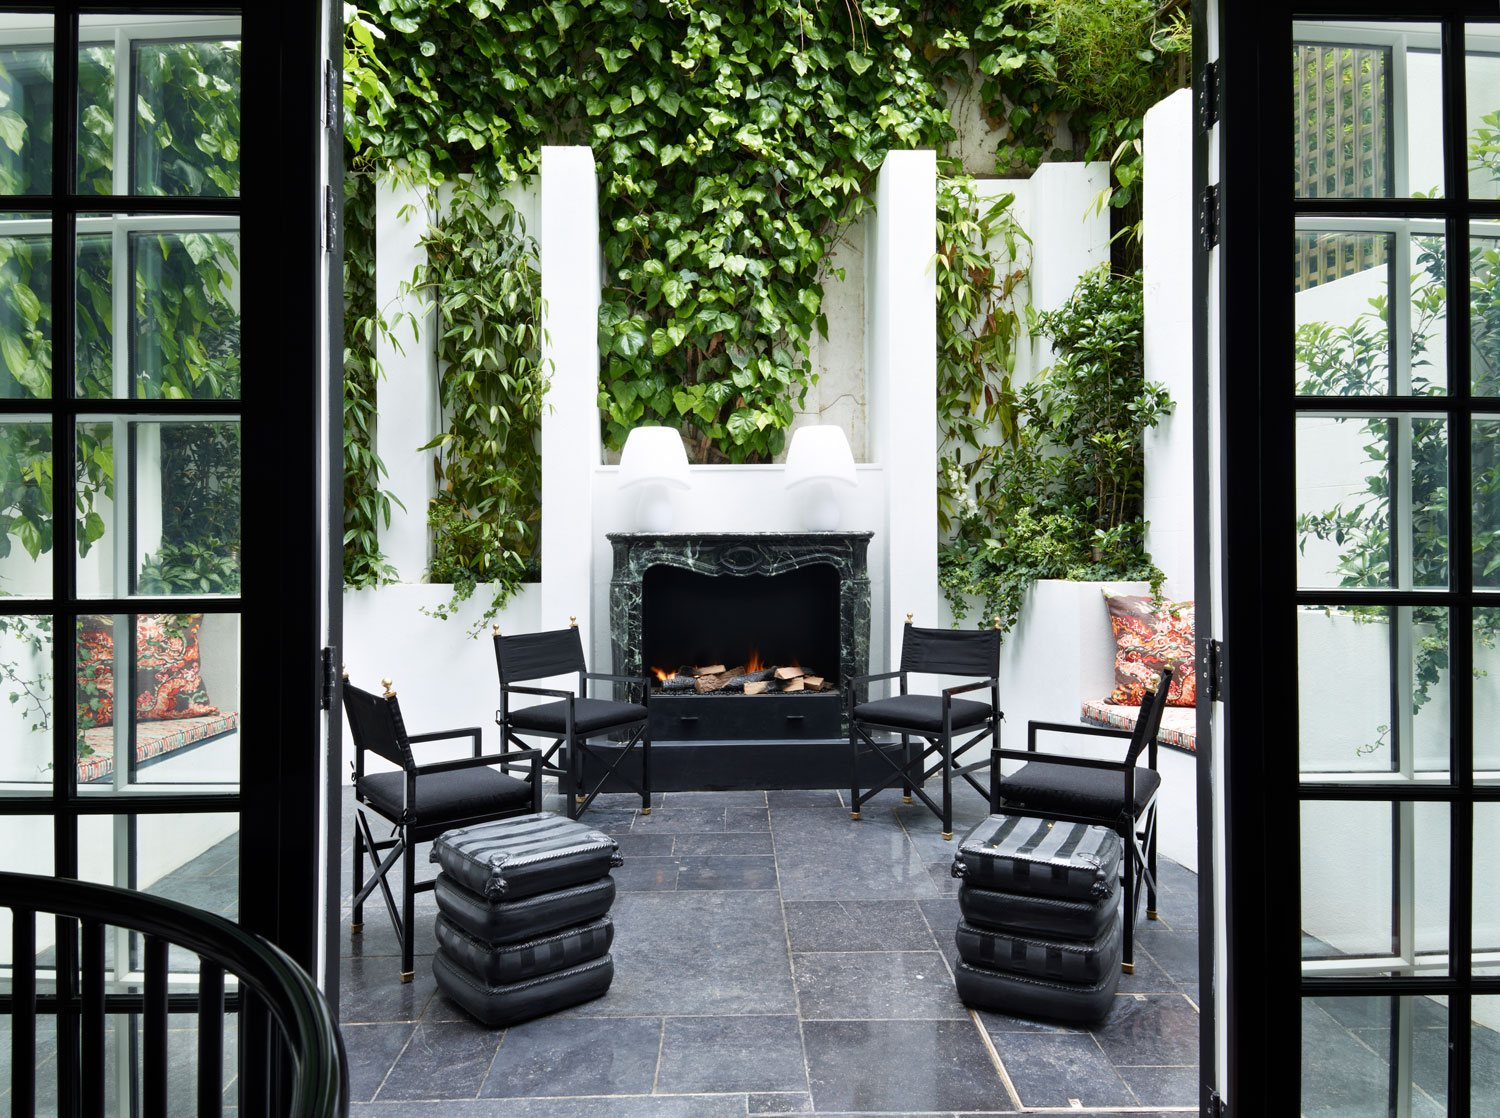 This walled terrace designed by Philip Vergeylen for Nicholas Haslam Ltd. blurs the line between indoors and outdoors. The fireplace is Maurin Green marble, and the floor is reclaimed 18th-century Belgian bluestone.